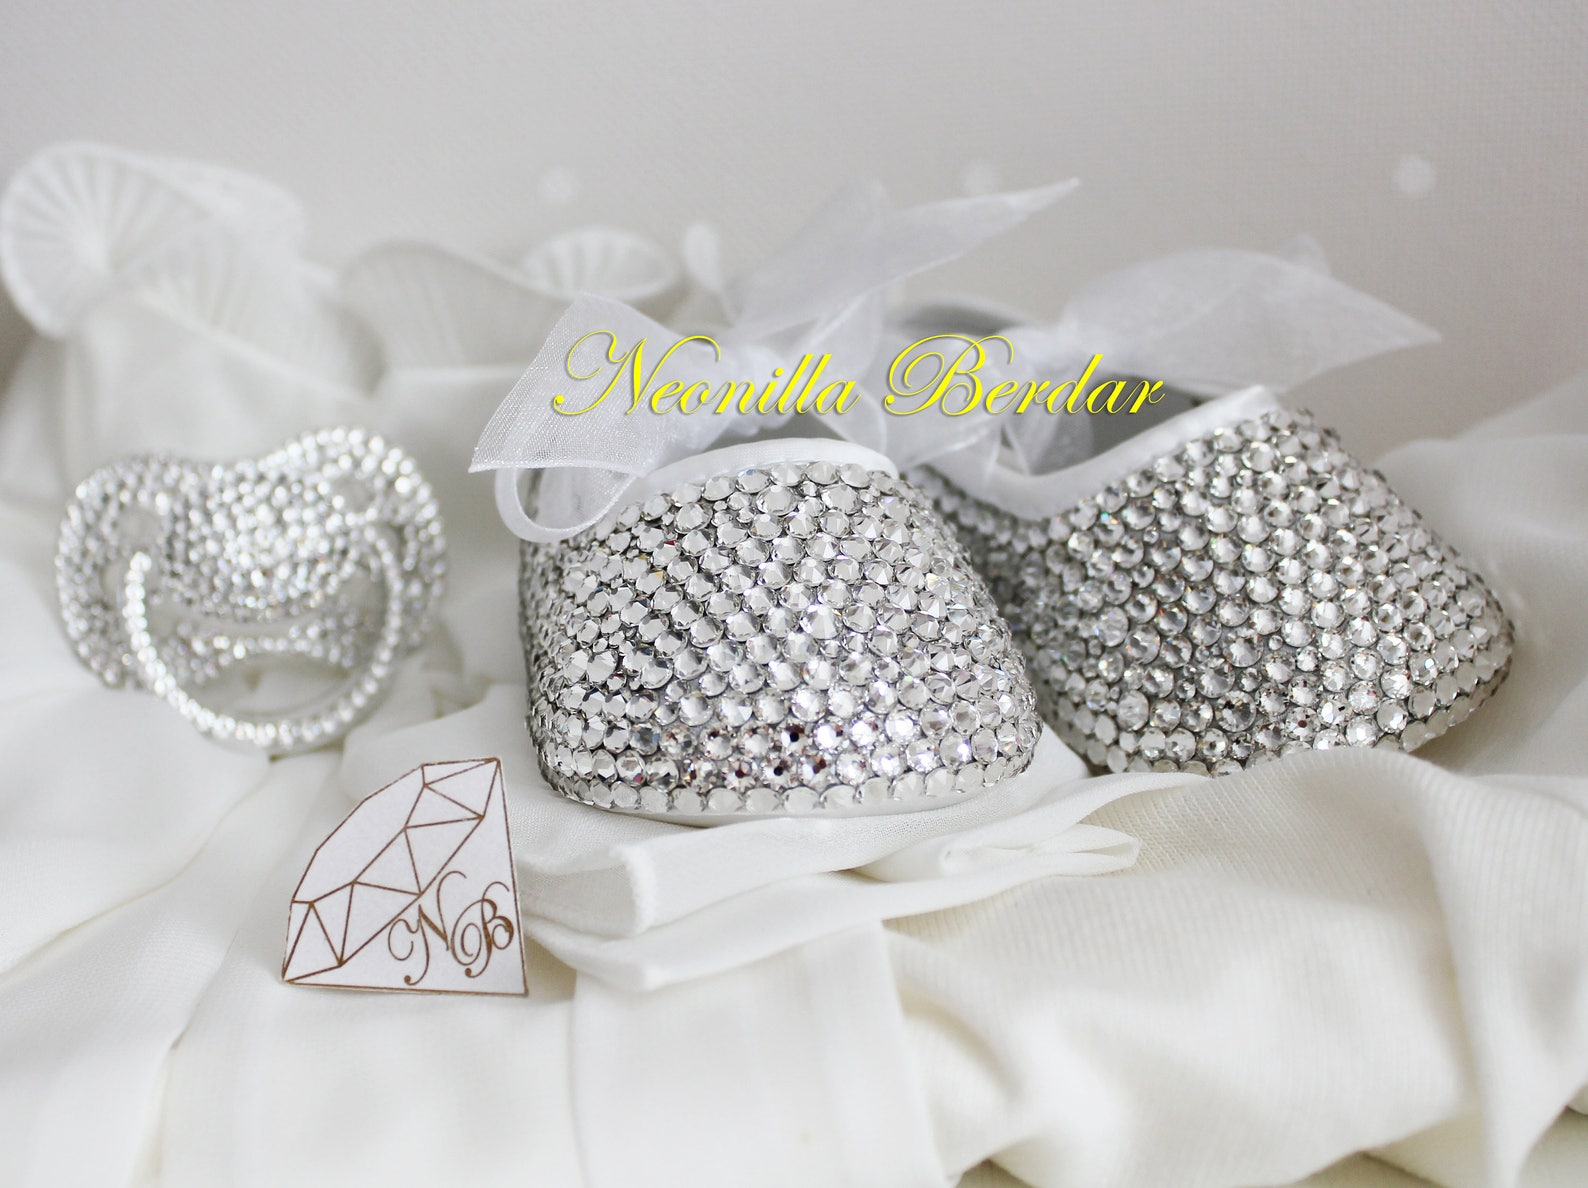 bling baby shoes with swarovski crystals - christening flowergirl shoes - embellished booties - swarovski ballet pram shoes